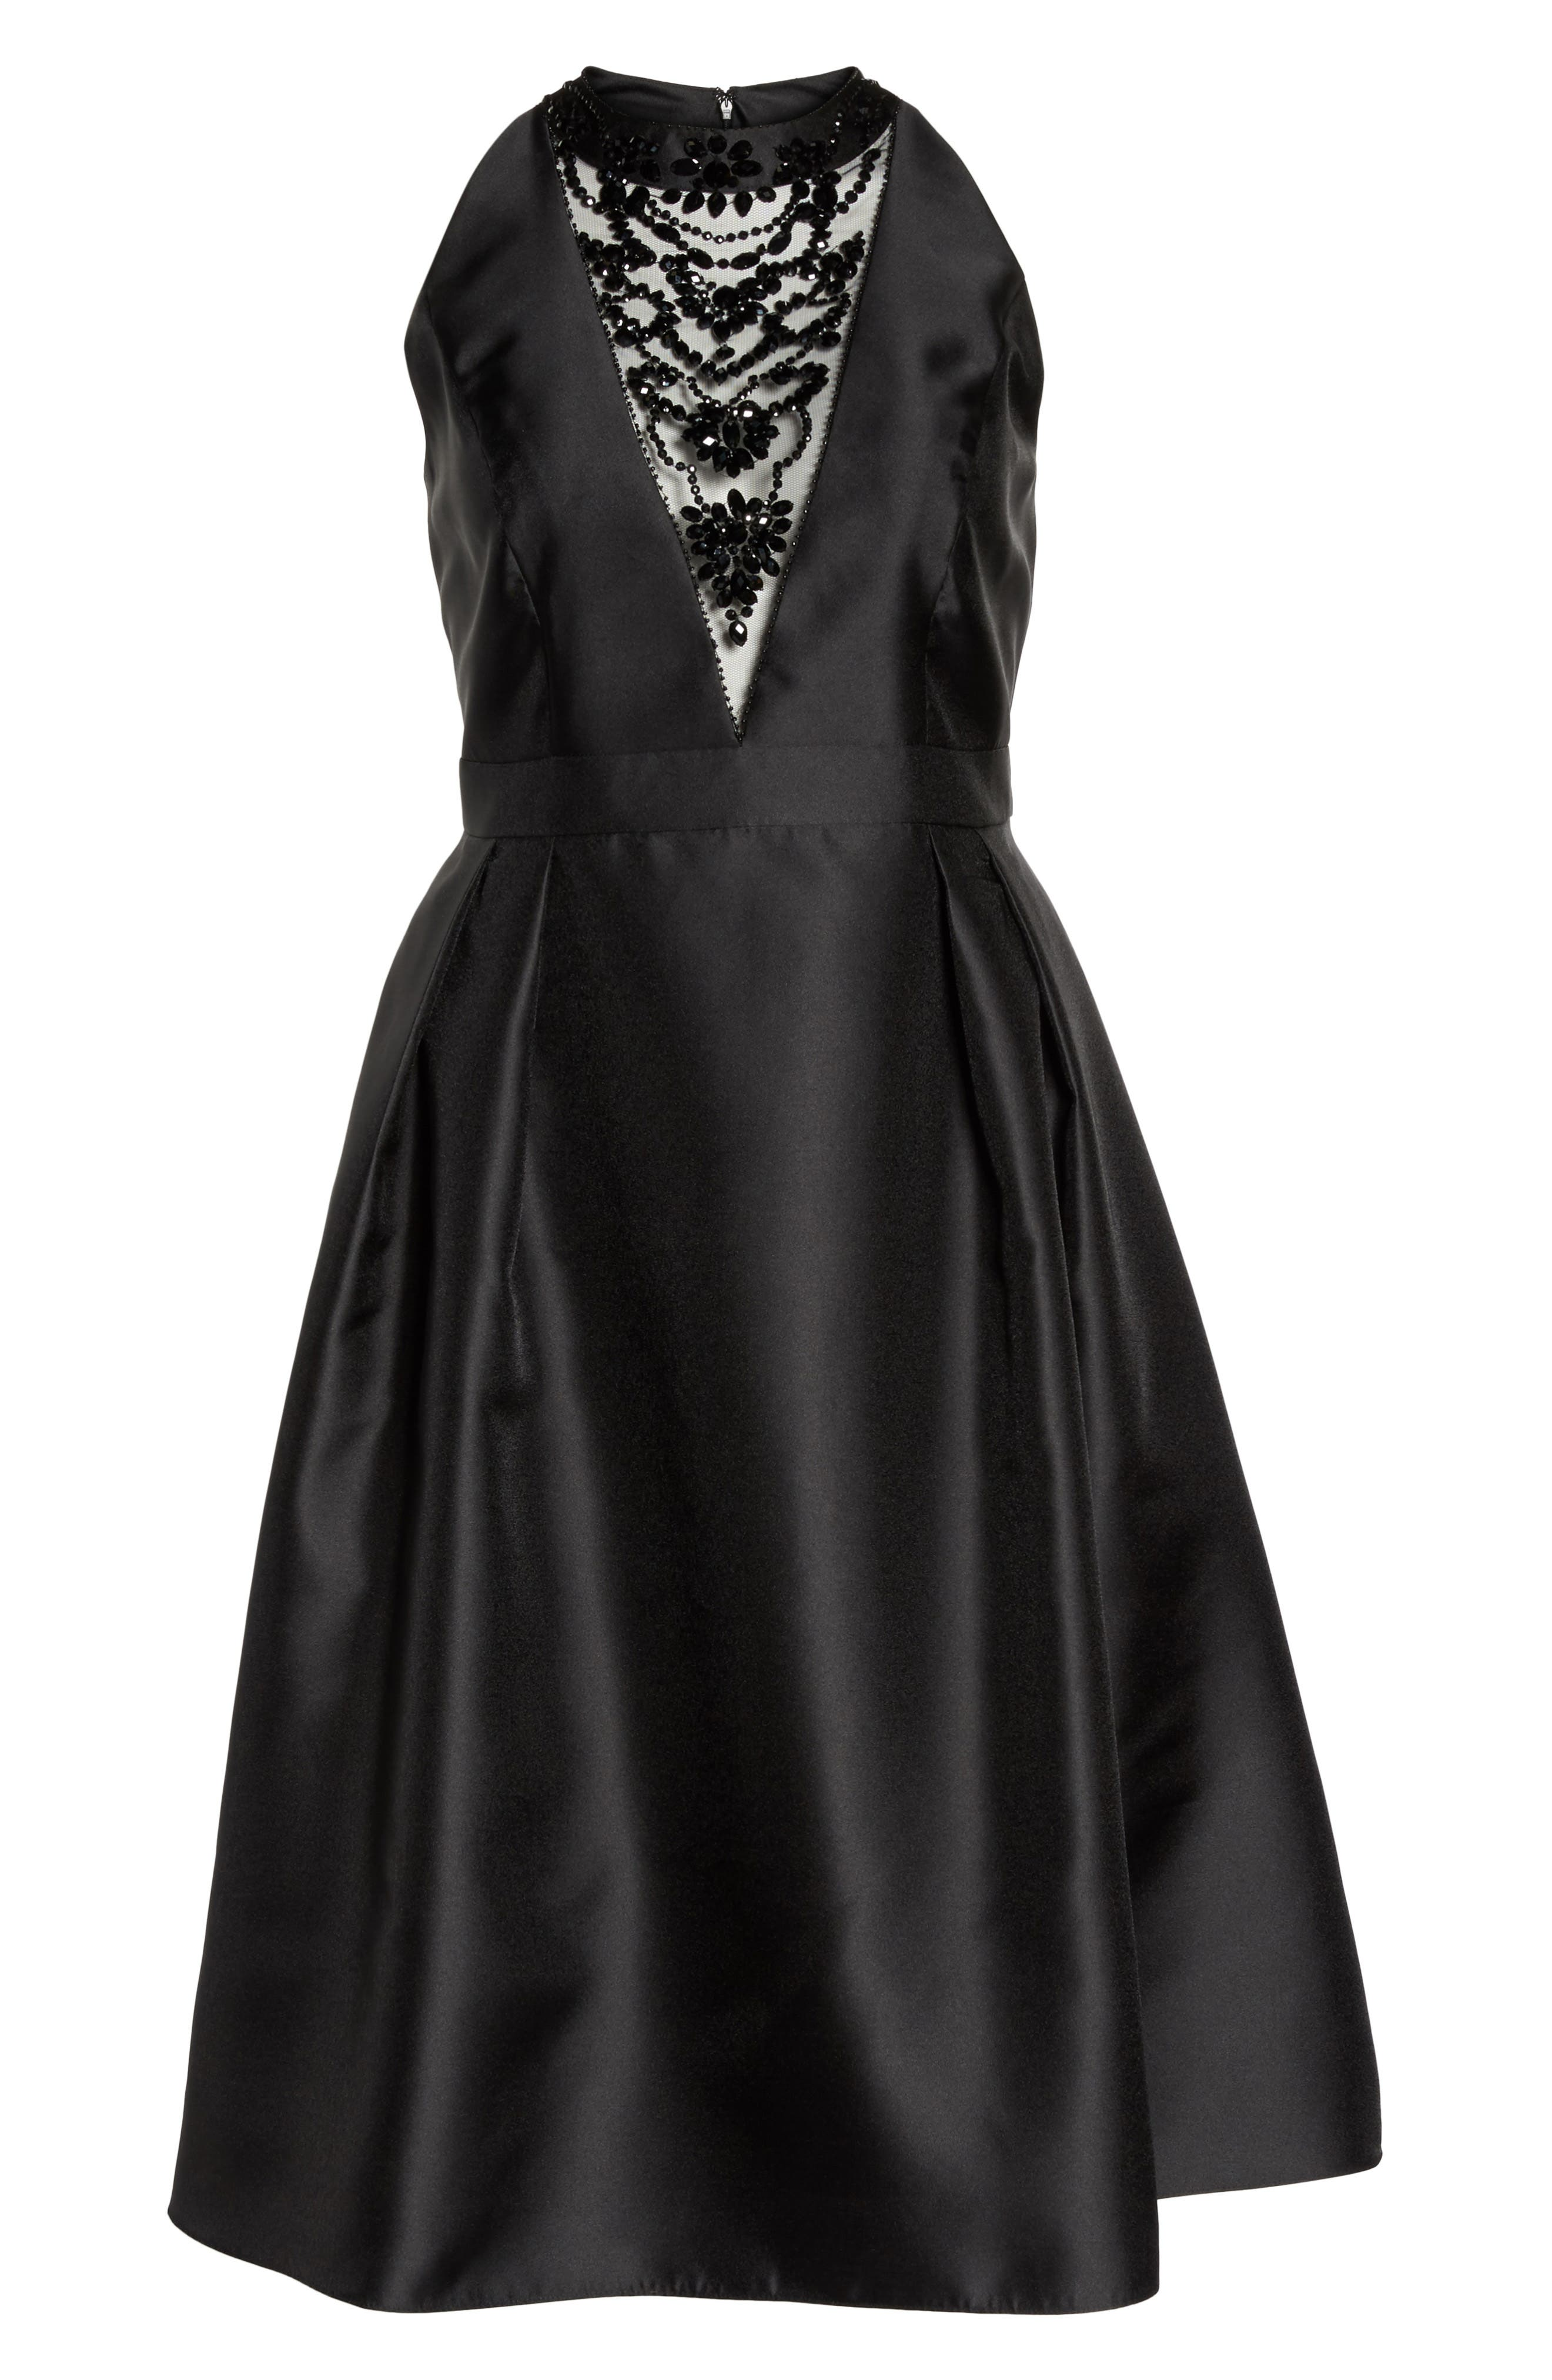 Adriana Papell Beaded Fit & Flare Dress,                             Alternate thumbnail 6, color,                             002